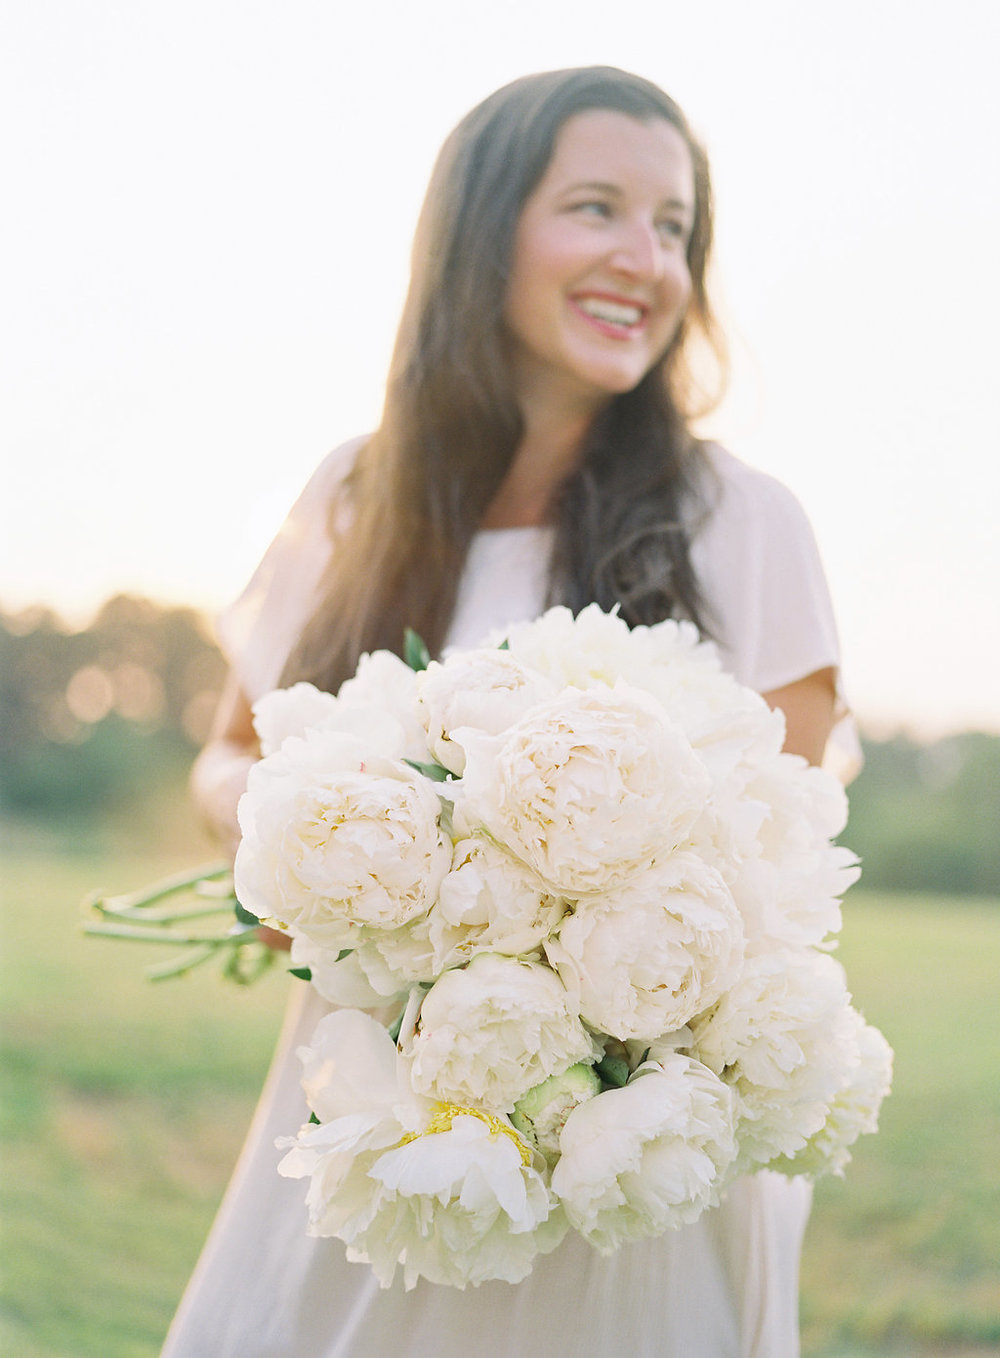 - Join Jessica Zimmerman and one of the top wedding photographers Charleston this September to put together an unforgettable photo shoot in a charming landscape.